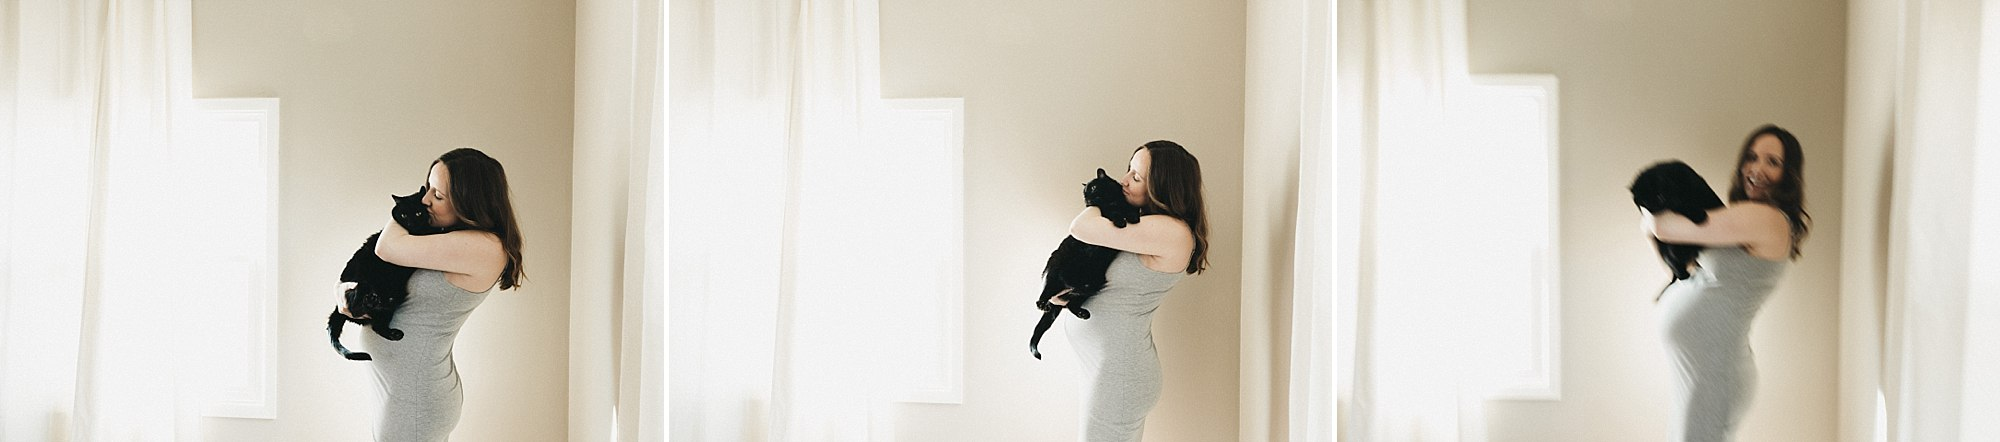 des moines maternity session with cats